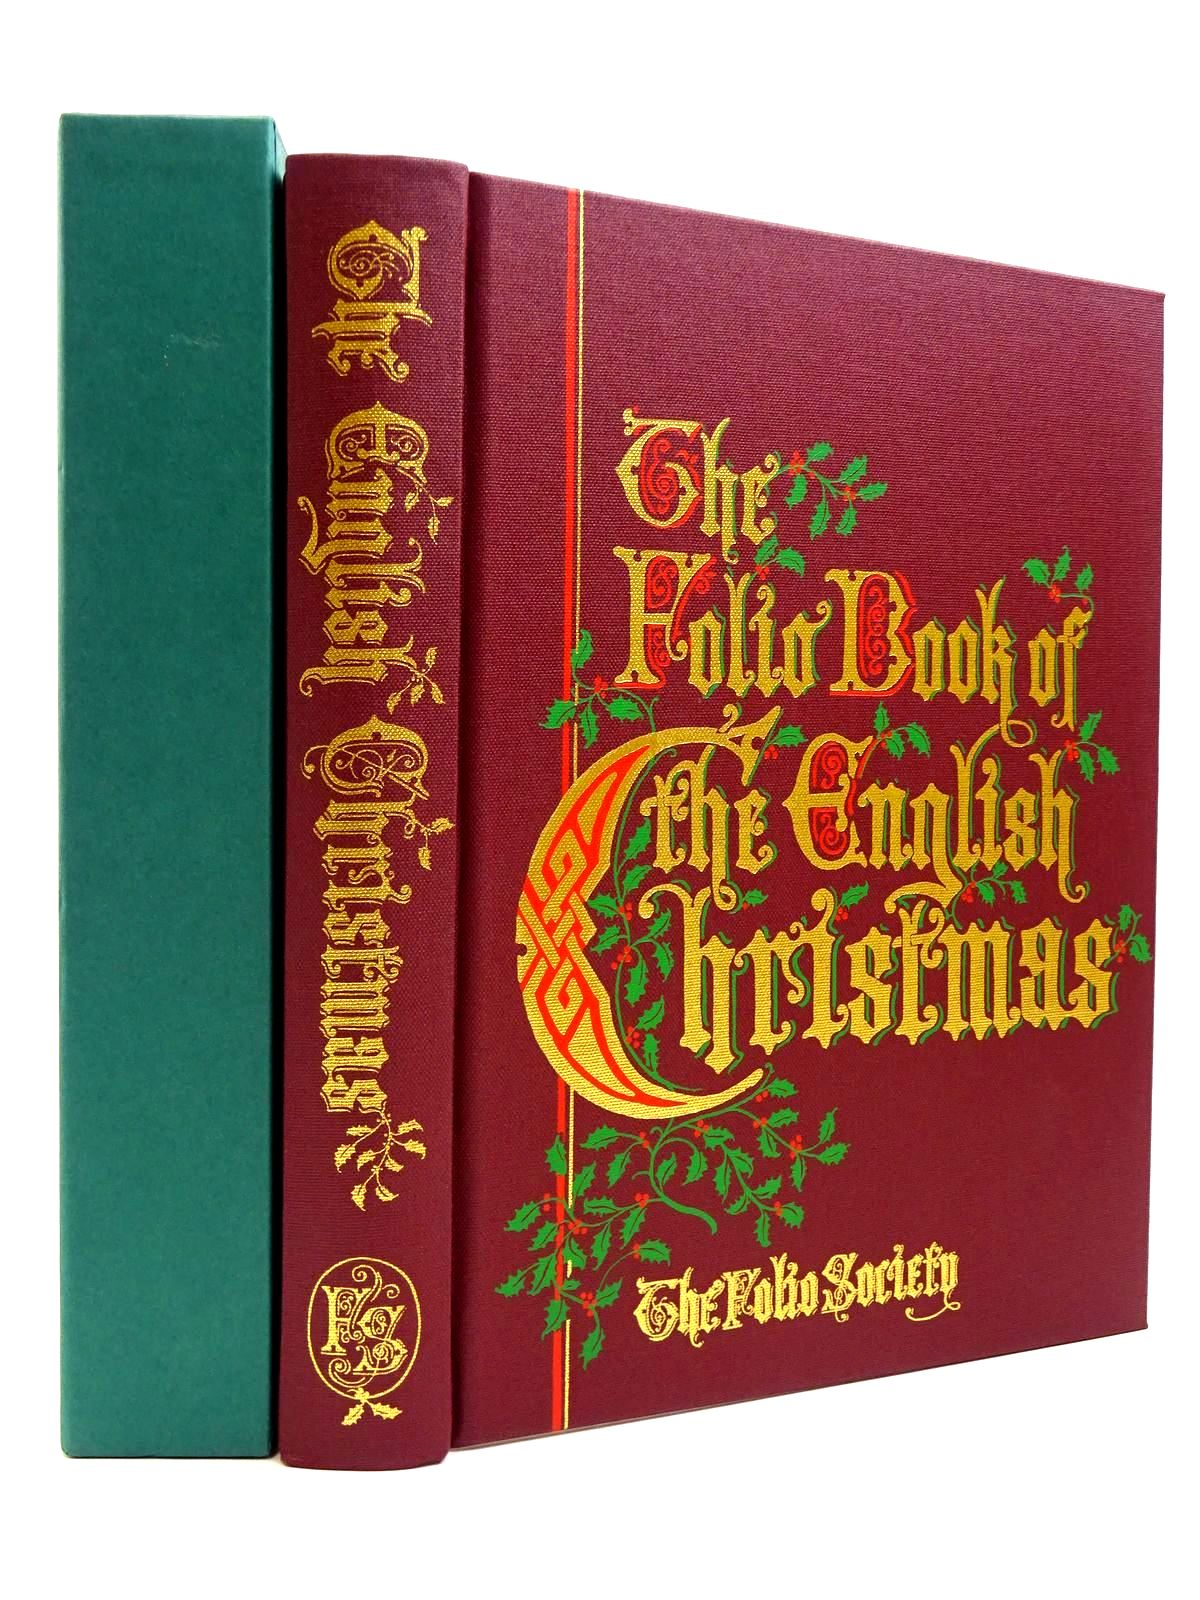 Photo of THE FOLIO BOOK OF THE ENGLISH CHRISTMAS written by Beare, Geraldine<br />Lees, Edwin<br />Lee, Laurie<br />Farjeon, Eleanor<br />Grahame, Kenneth<br />James, Henry<br />Eliot, George<br />Dickens, Charles<br />Beaton, Cecil<br />et al,  illustrated by Holder, John published by Folio Society (STOCK CODE: 2131271)  for sale by Stella & Rose's Books